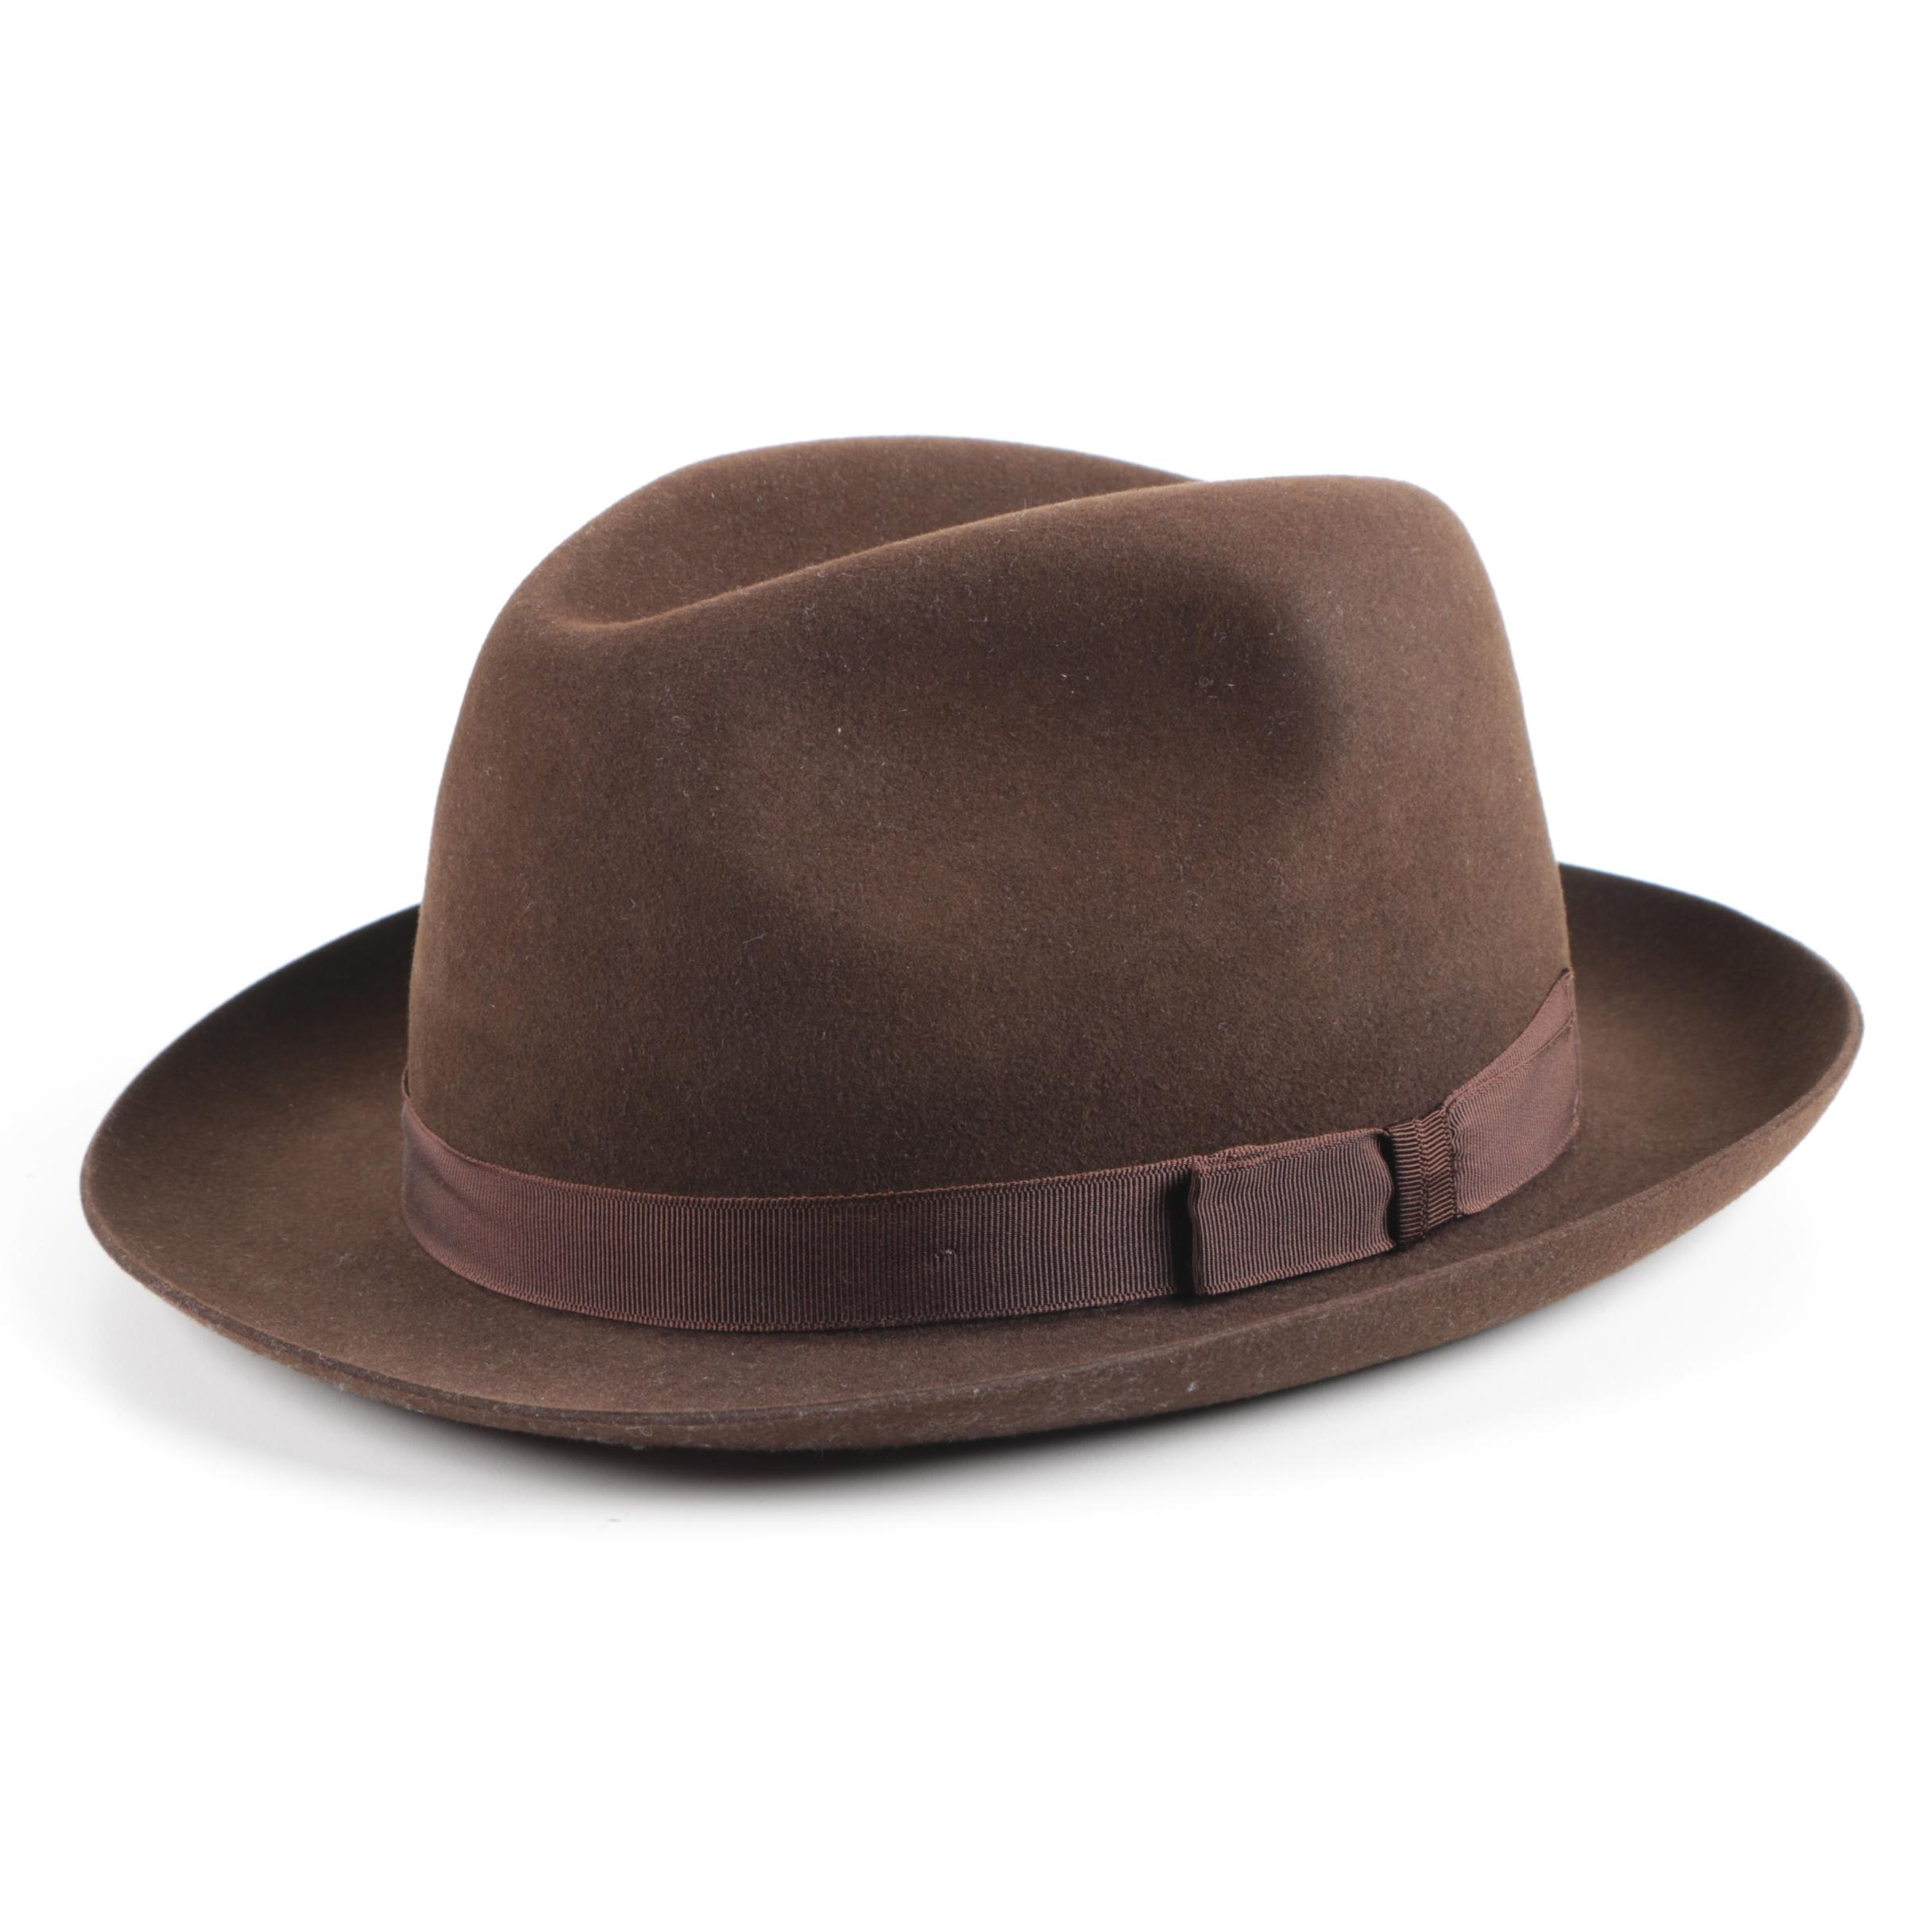 Christys' Brown Fedora Hat with Red Hat Box